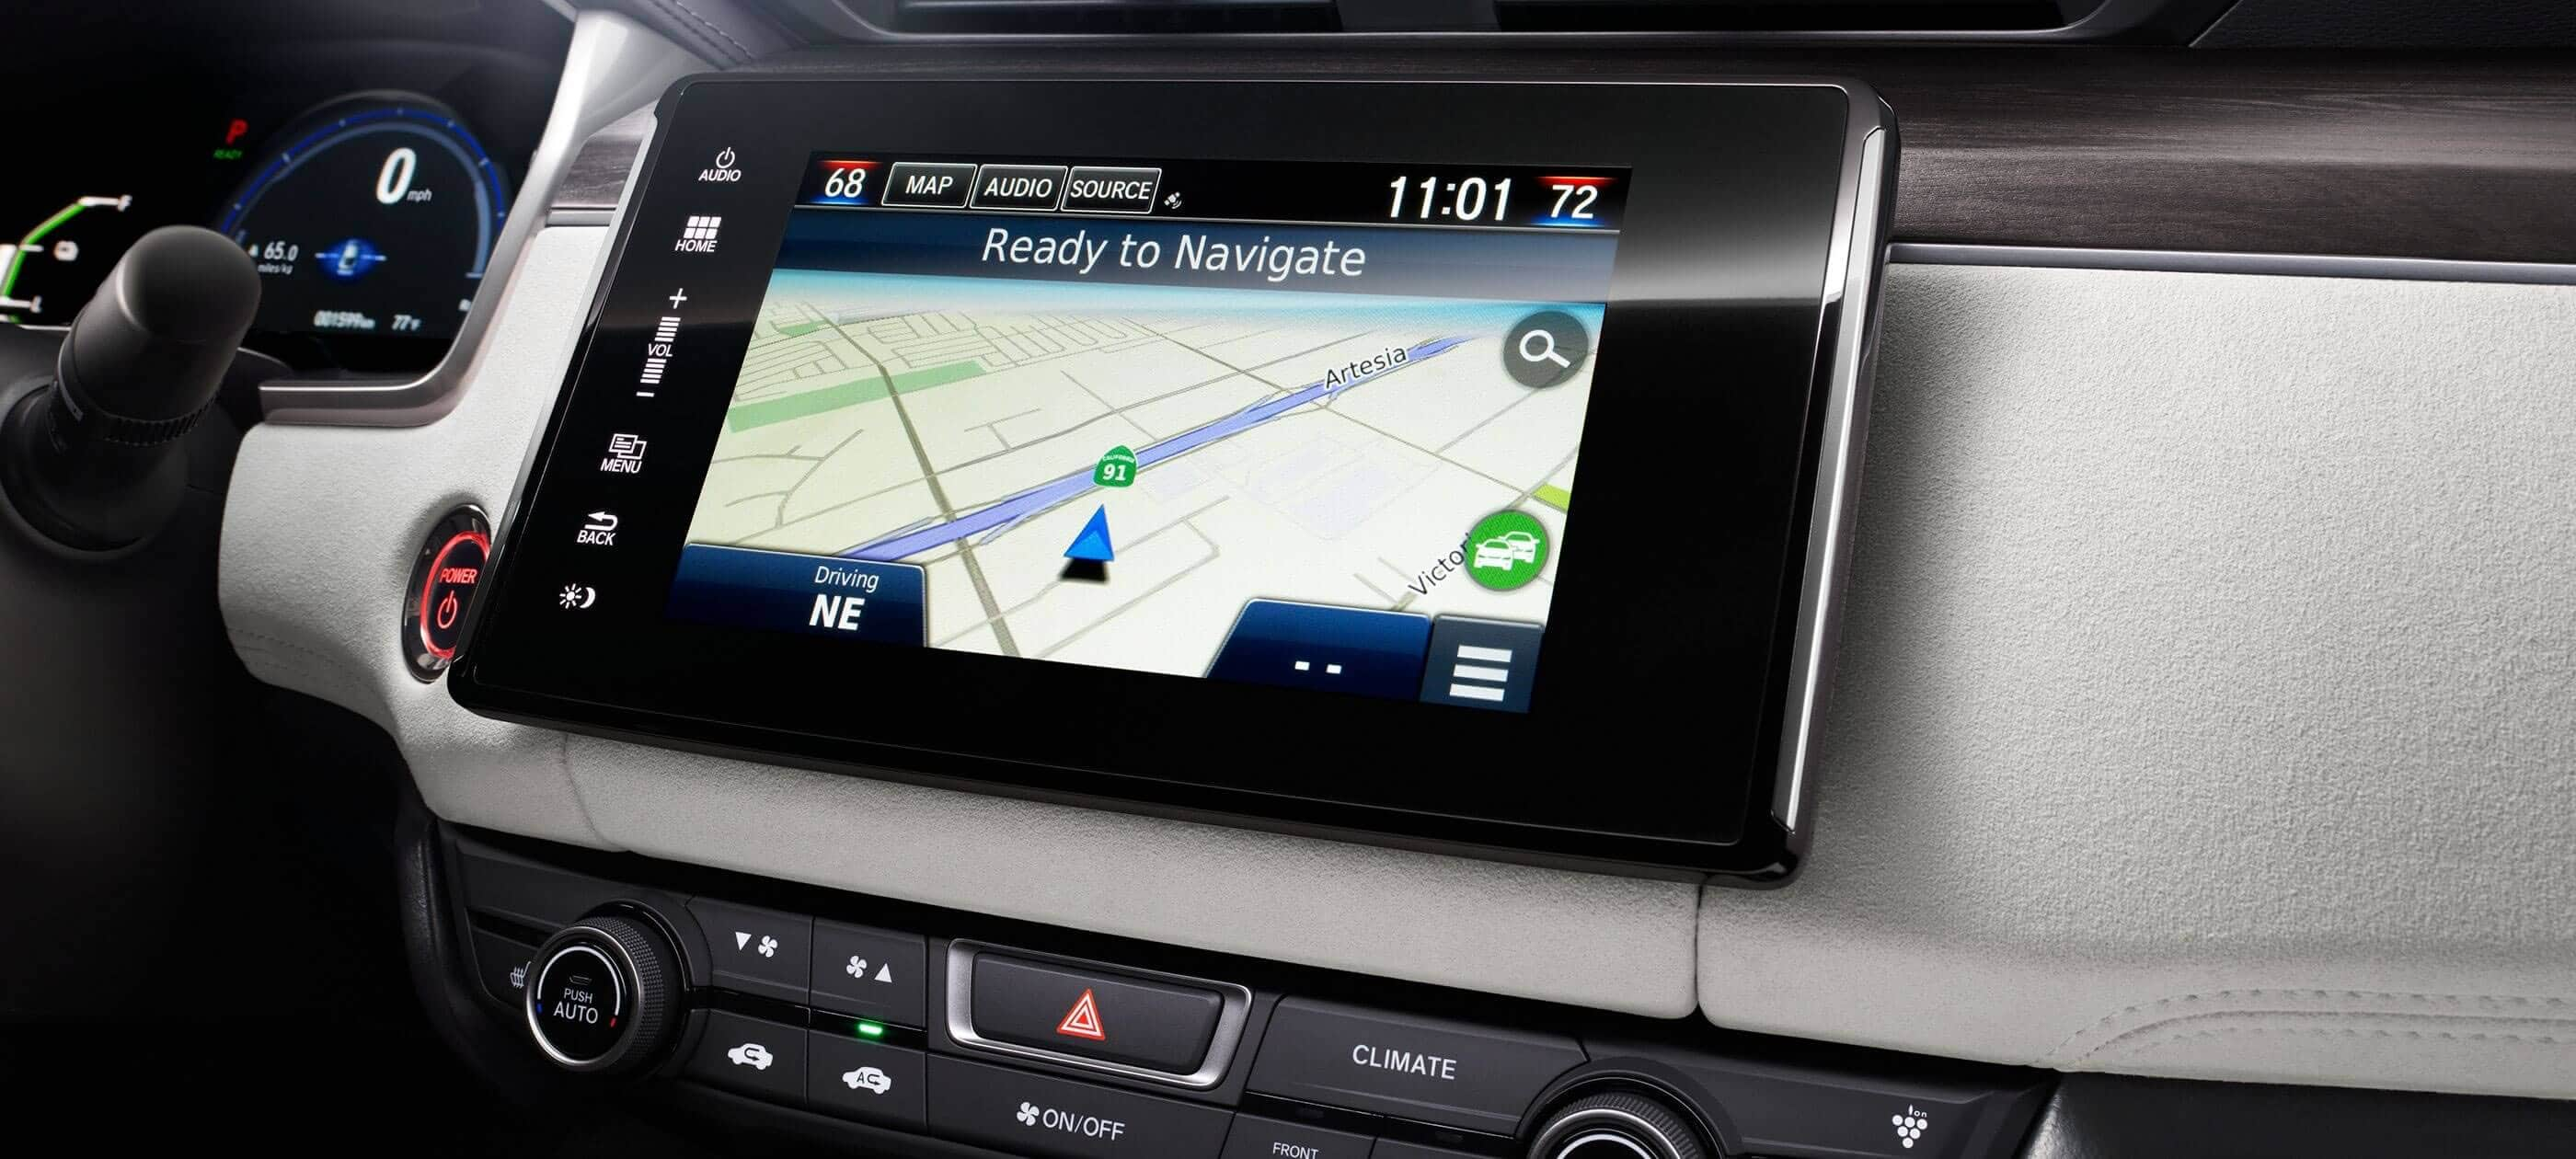 Satellite-Linked Navigation System